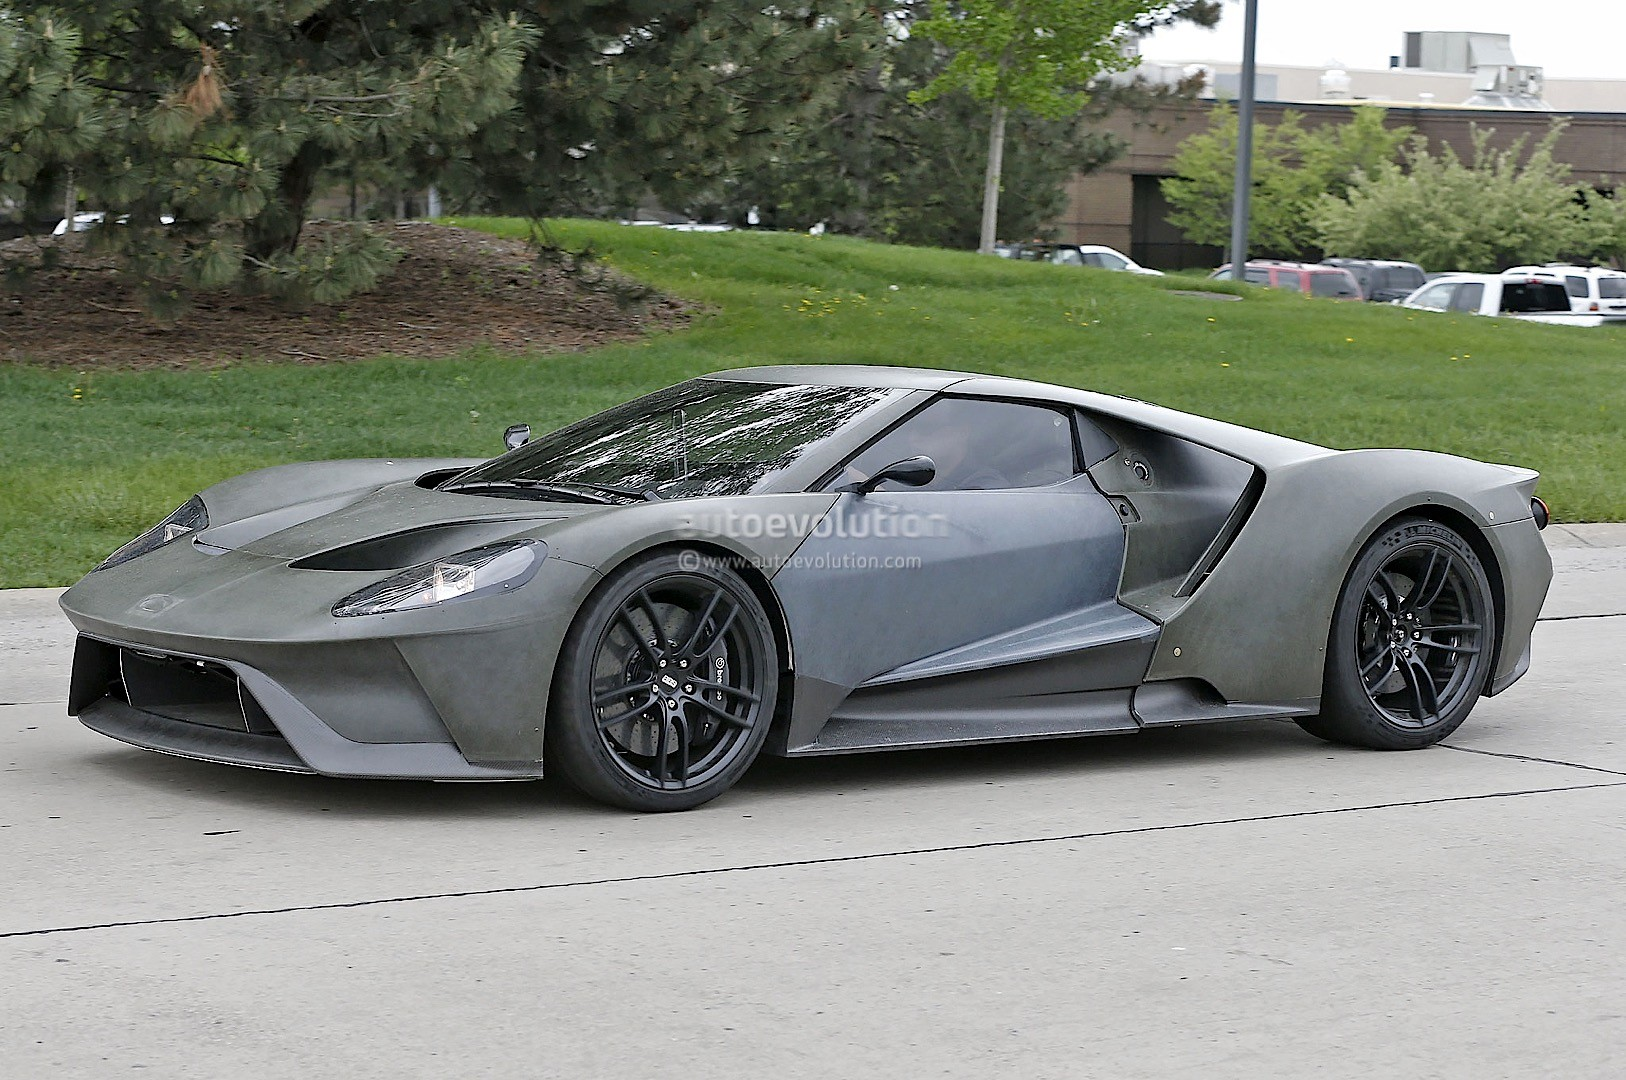 2017 ford gt test mule spied looks apocalyptic sans paint. Black Bedroom Furniture Sets. Home Design Ideas